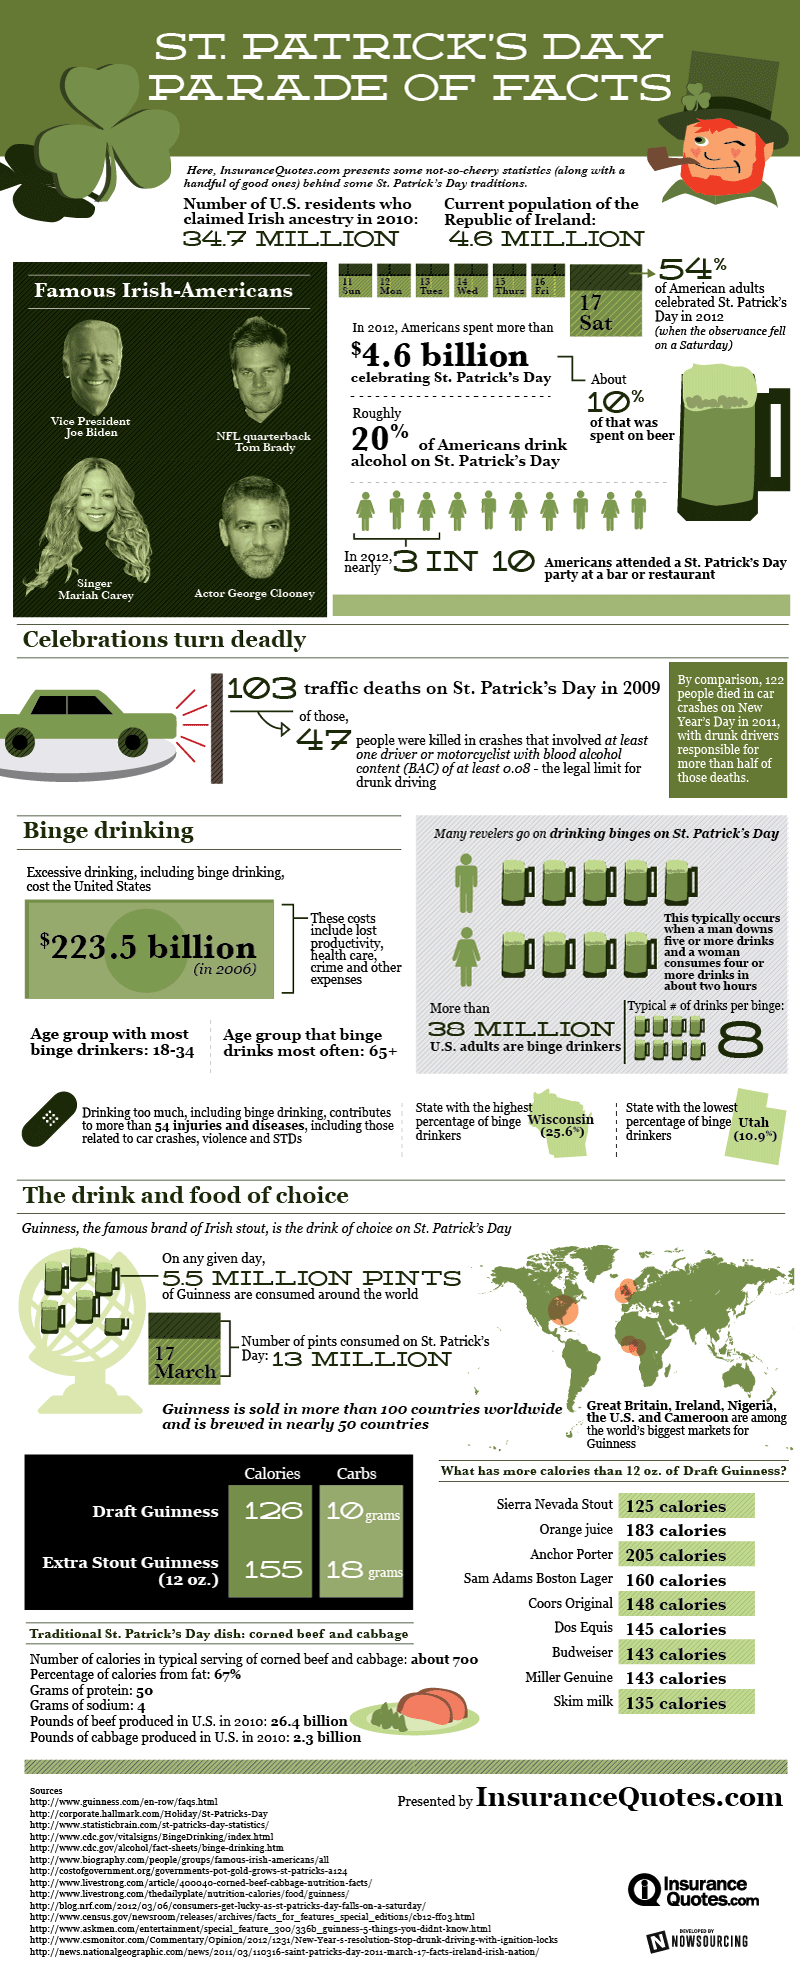 St. Patricks Day Parade of Facts